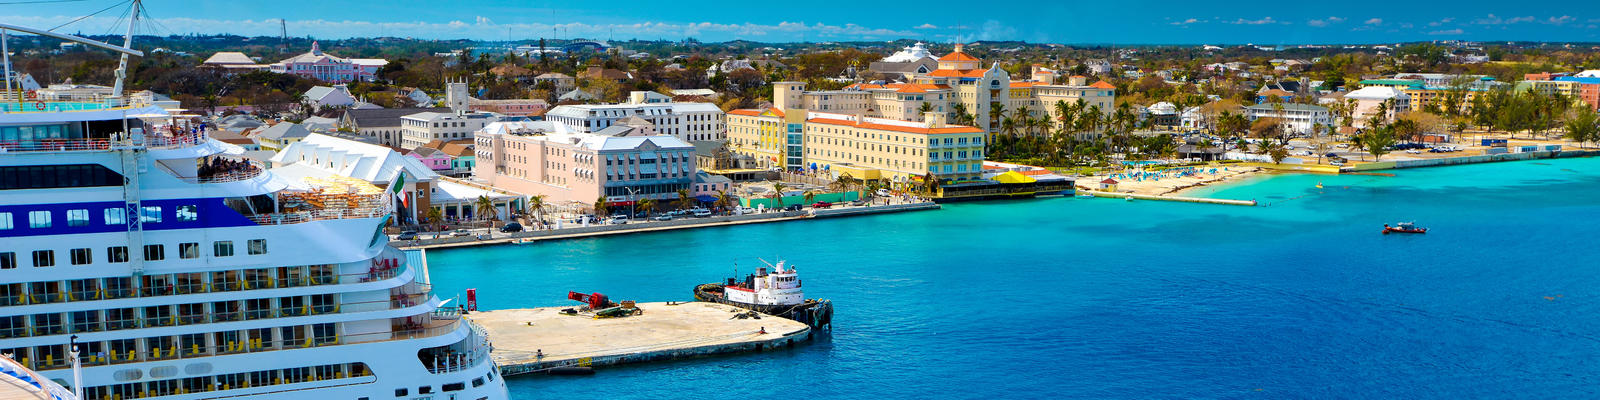 Cruise ship docked in Nassau, Bahamas (Photo: Costin Constantinescu/Shutterstock)